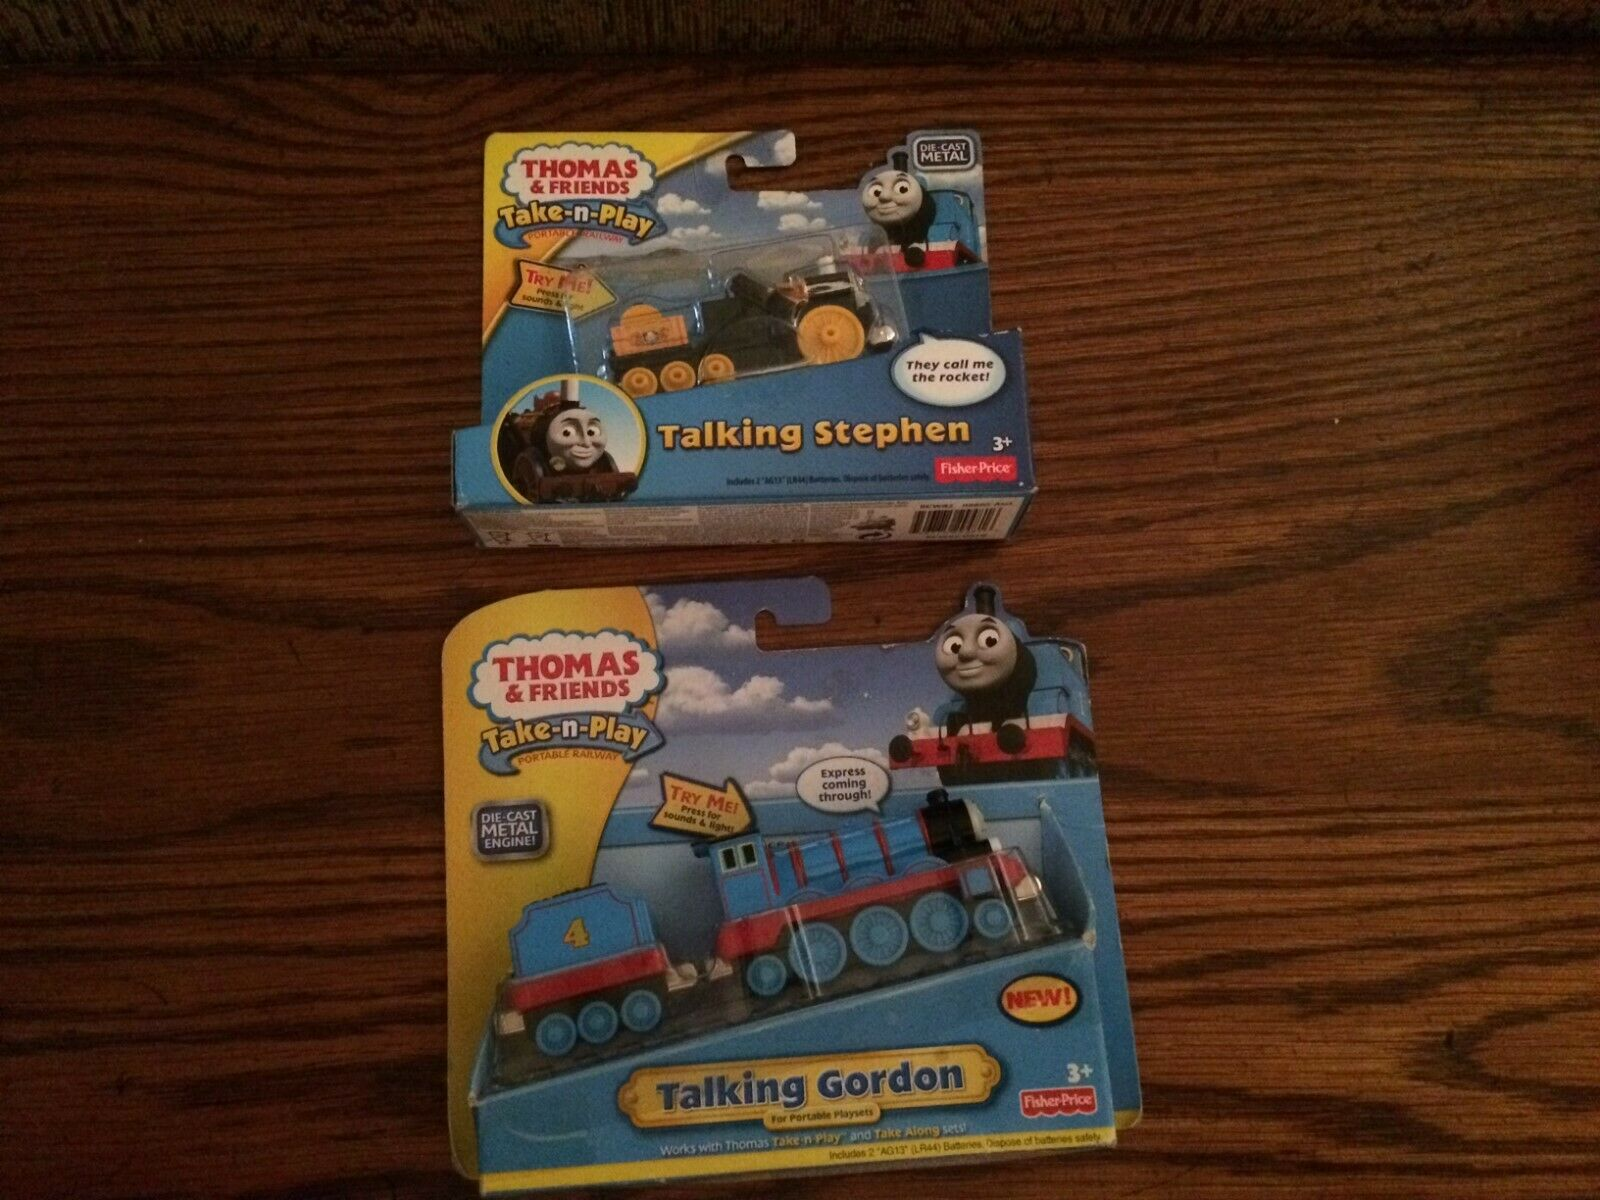 Talking Gordon & Stephen for the Die-Cast Thomas and Friends Take-n-Play NEW